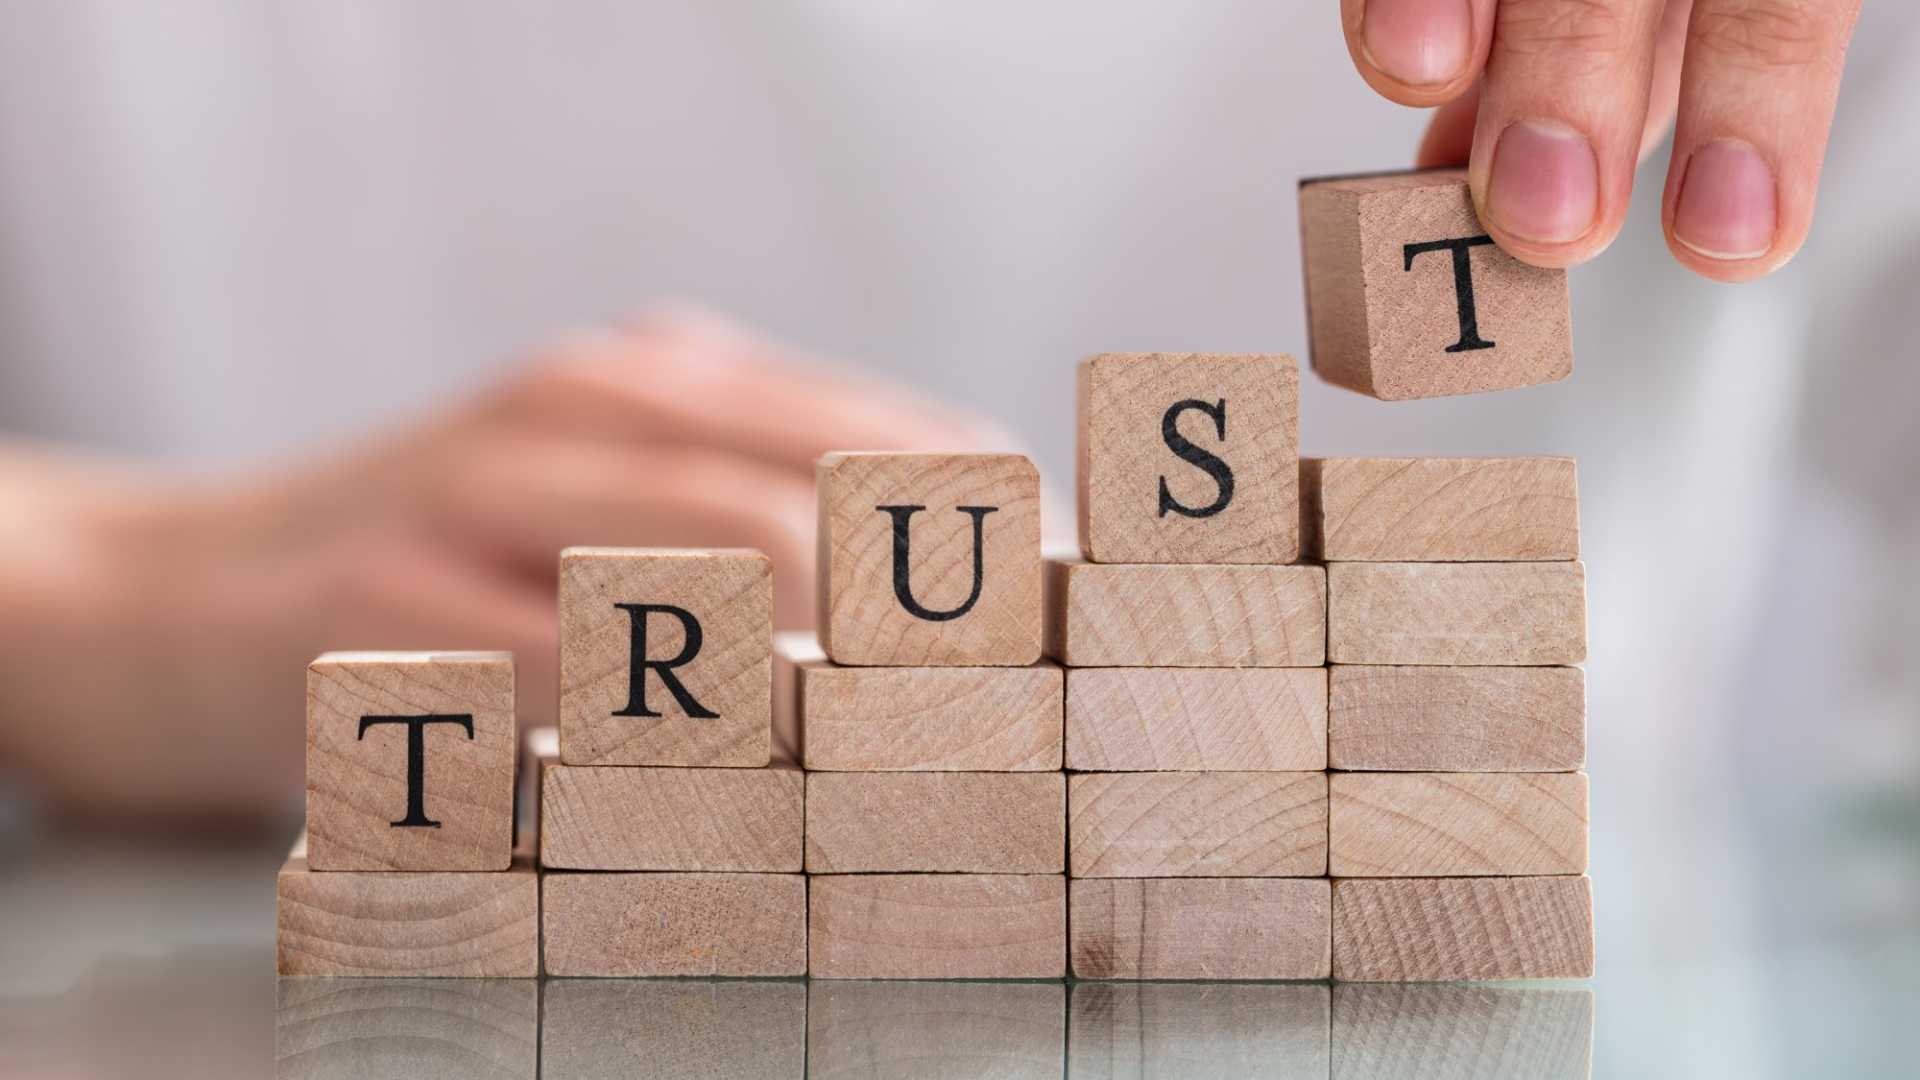 How to Maintain and Restore Trust With Your Teammates